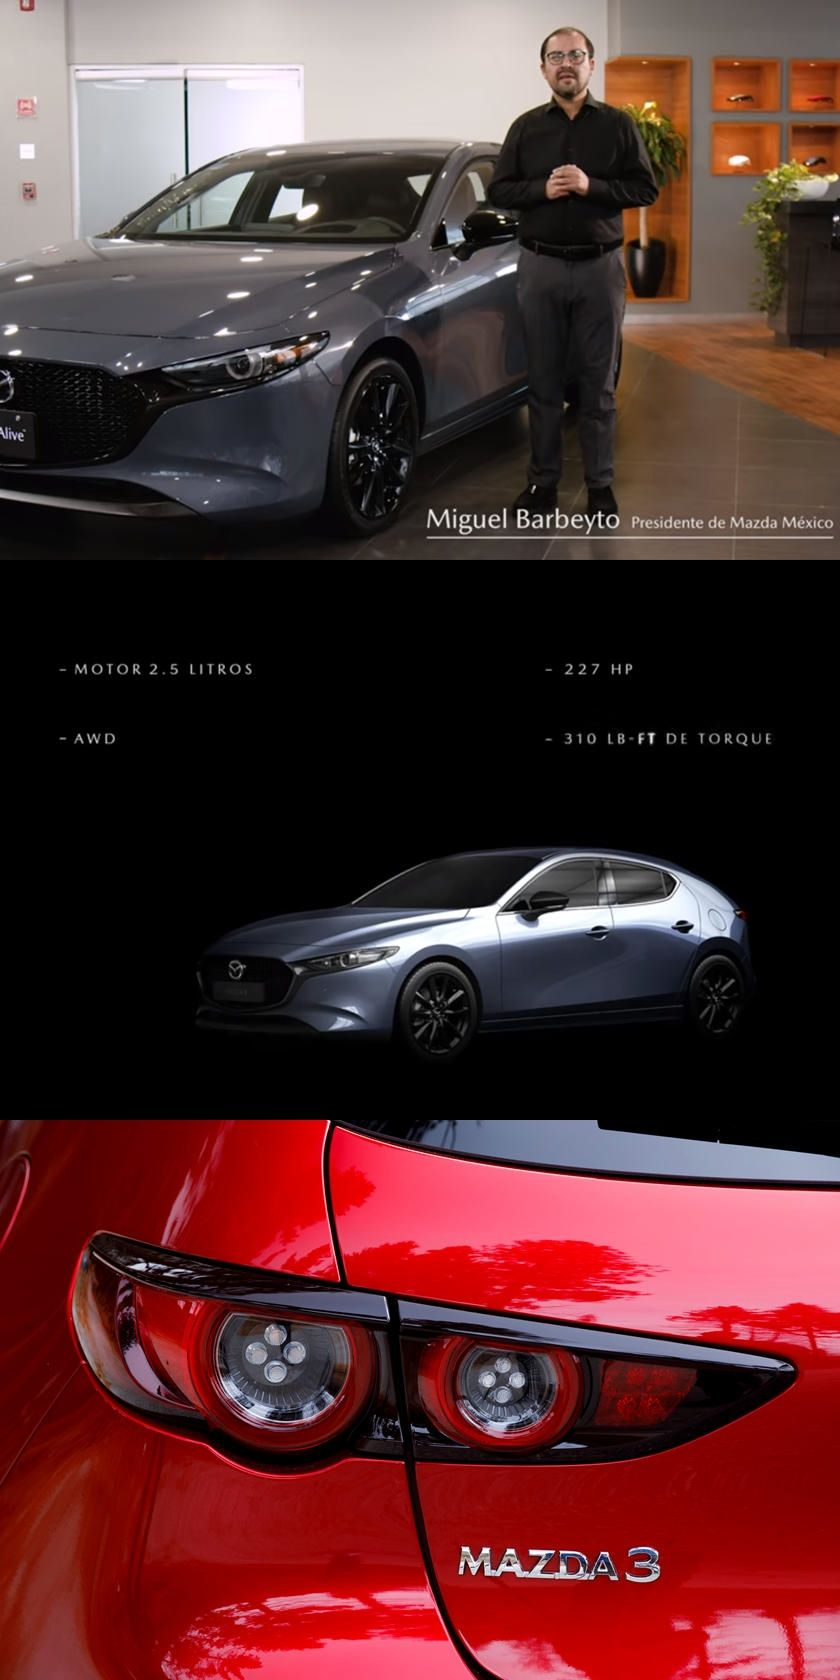 Turbocharged Mazda 3 Will Come With 227 Hp Mazda Of Mexico Has Revealed Some Of The New Car S Secrets Ahead Of Time In 2020 Mazda Mazda 3 New Cars